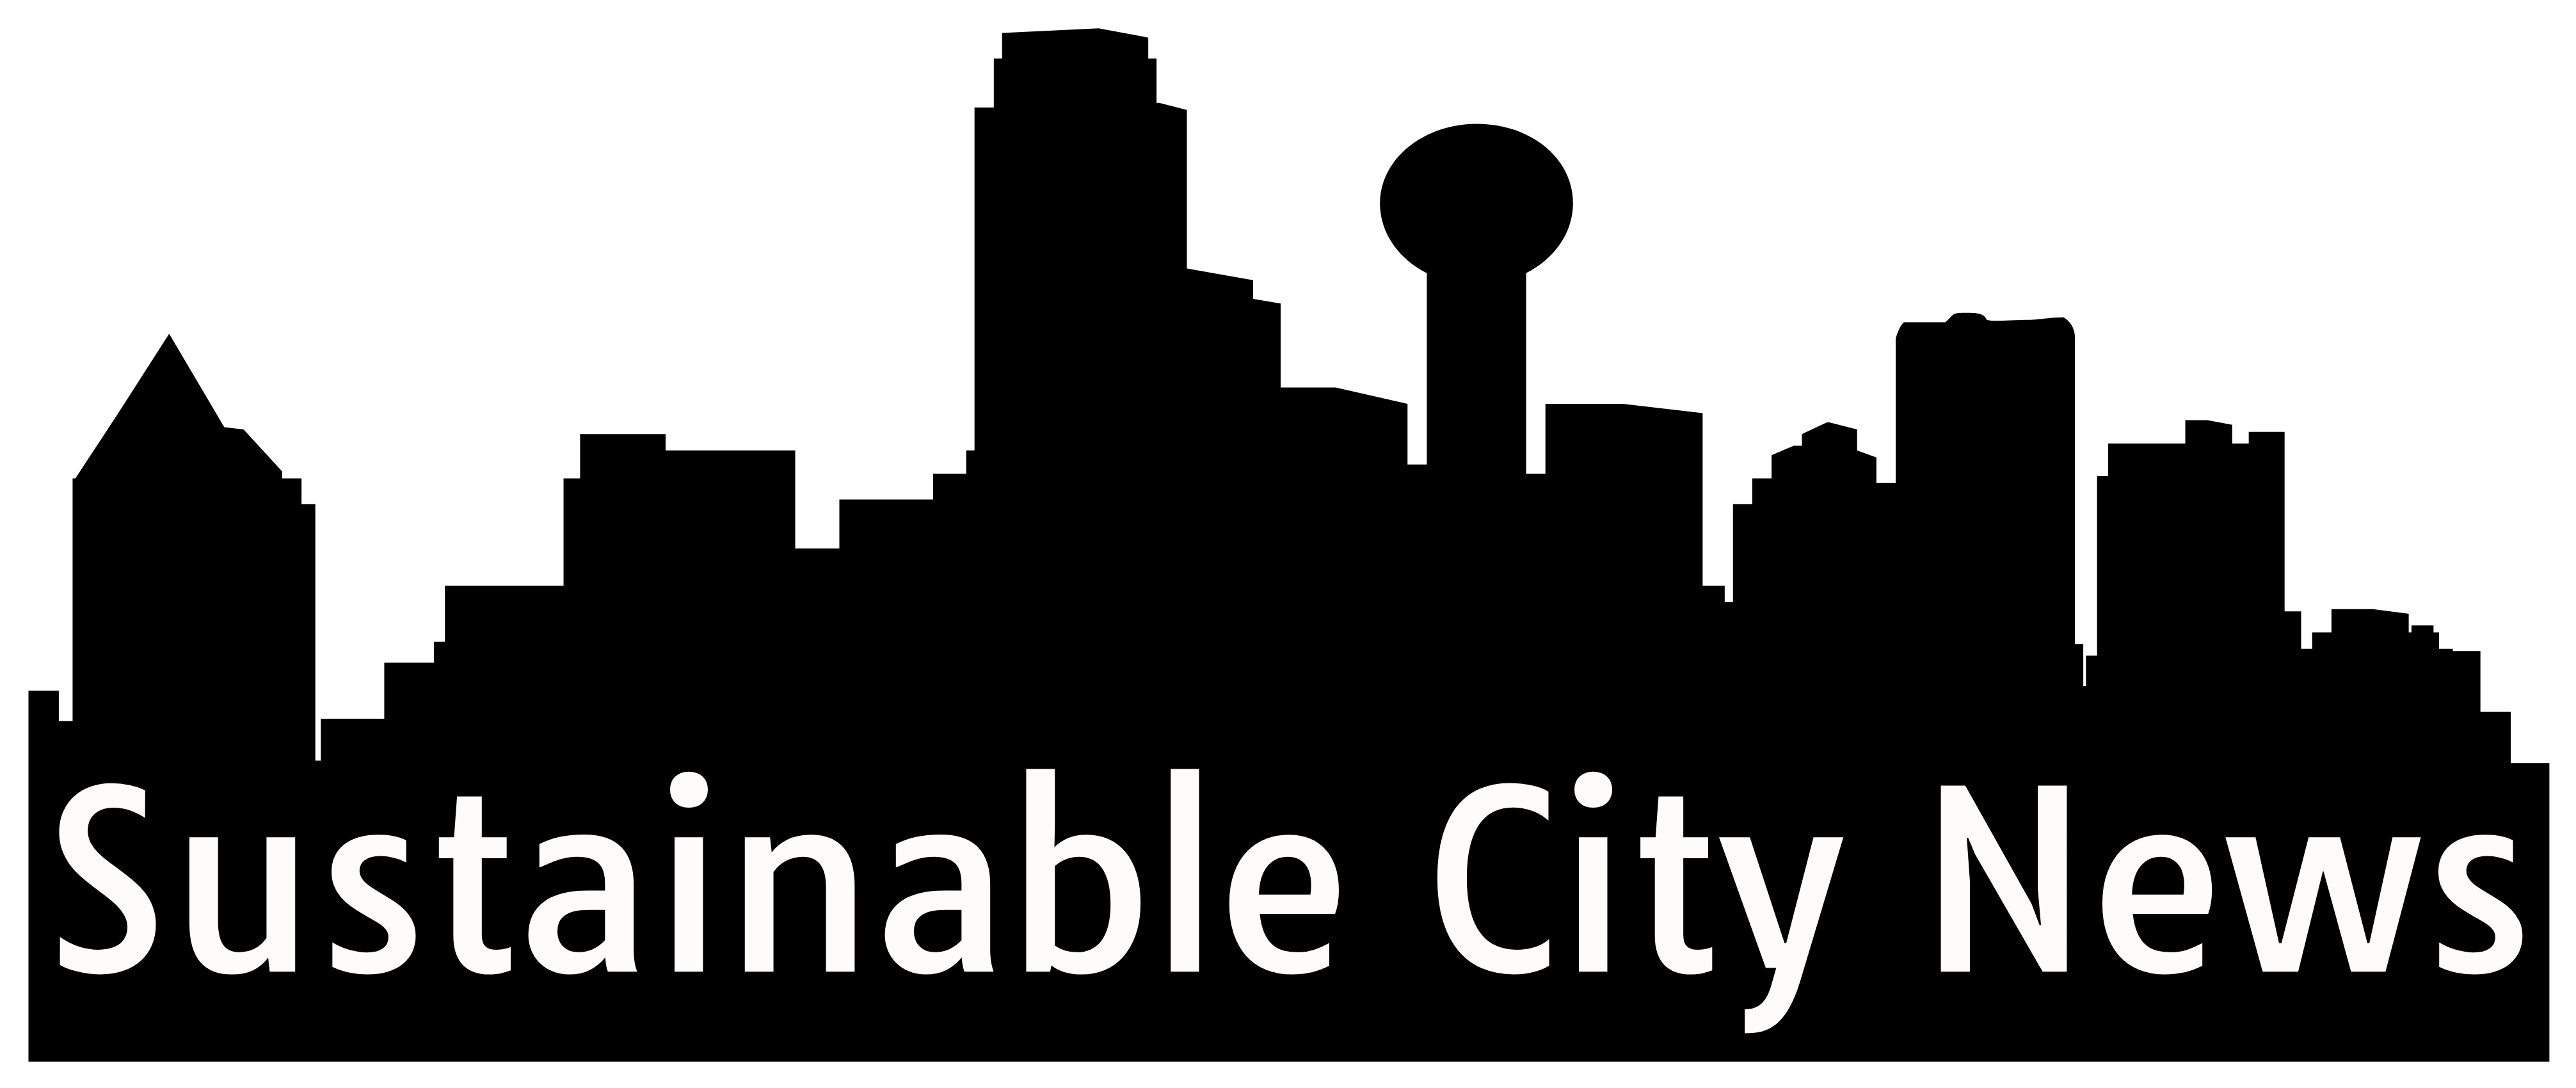 Sustainable City News